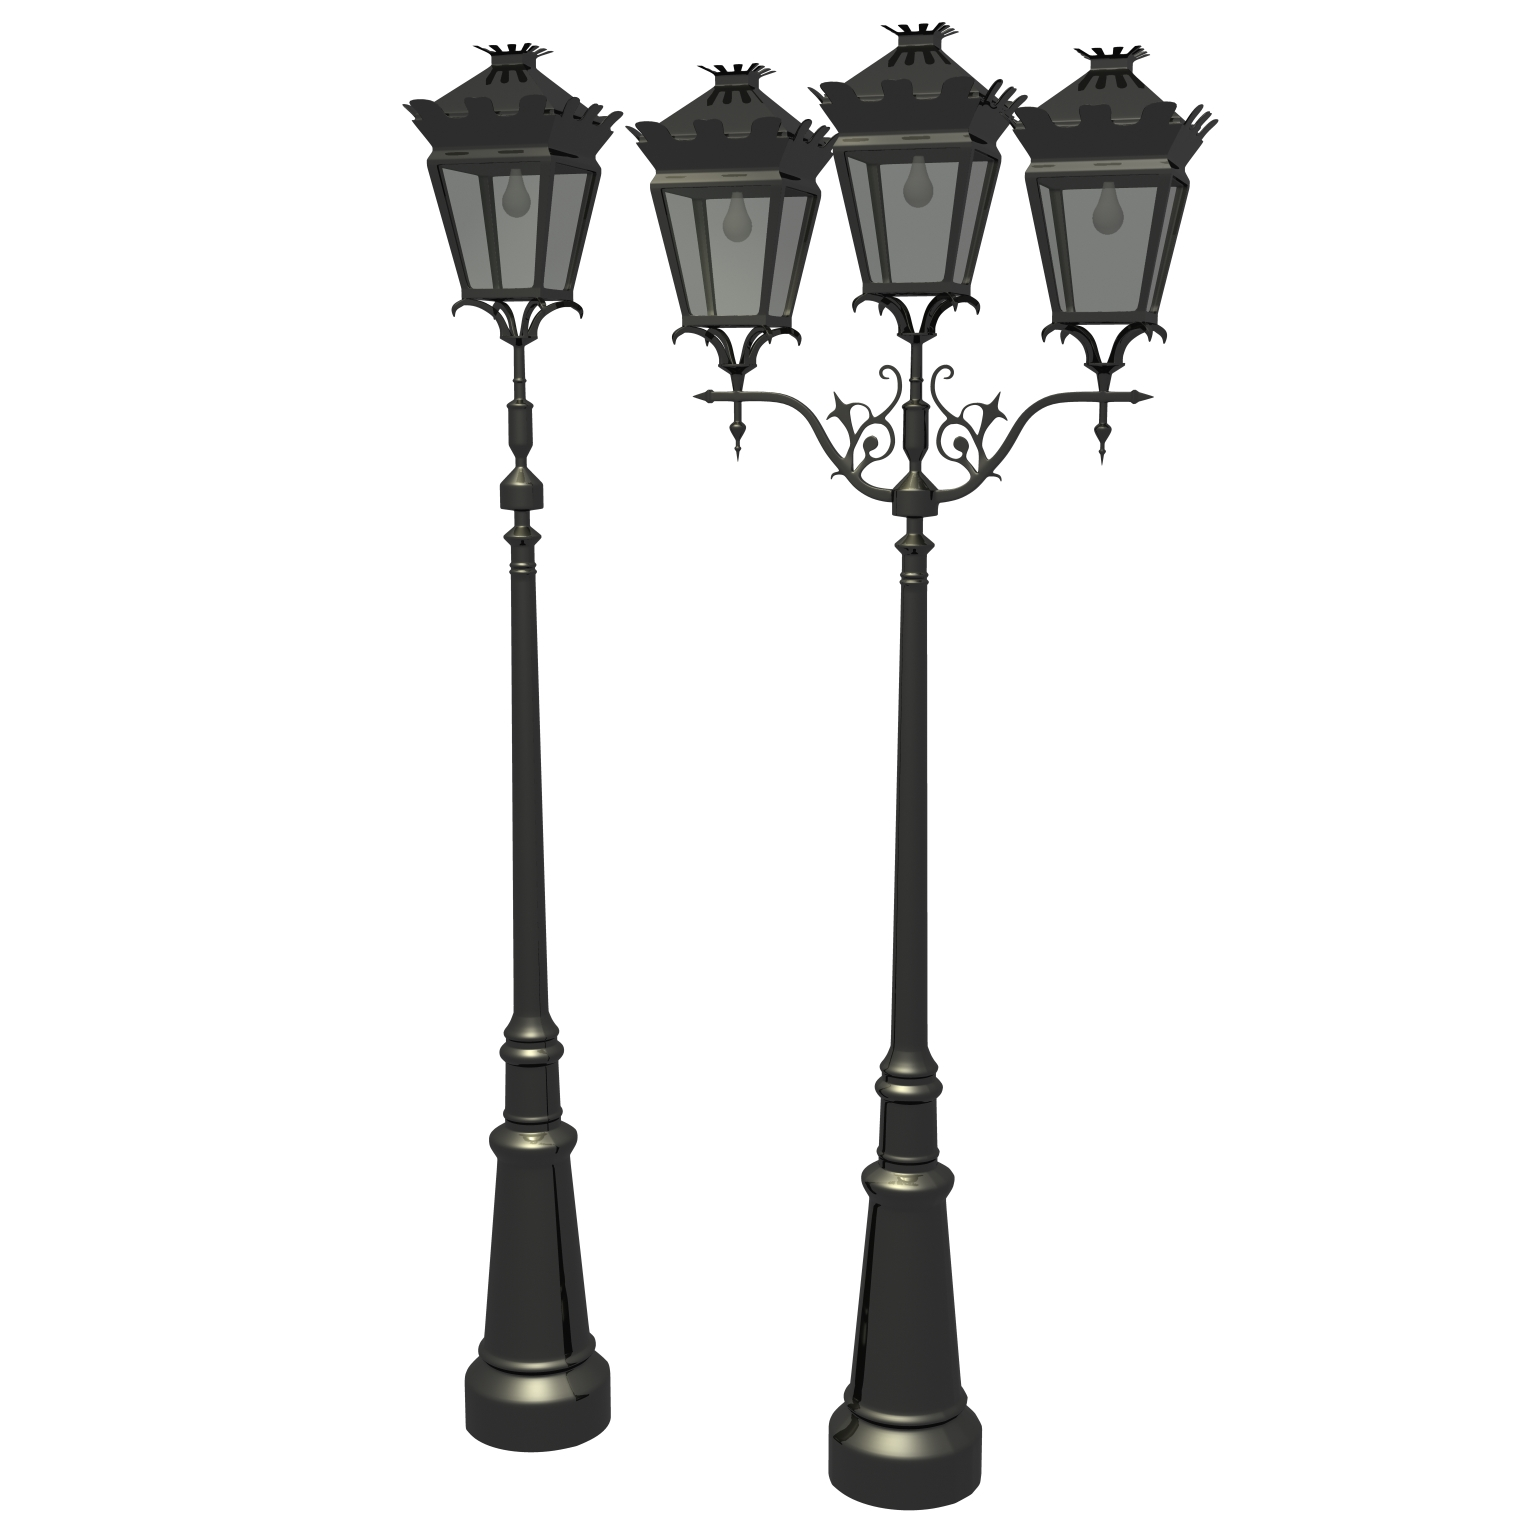 antique streetlight set 3d model ma mb flt 119130